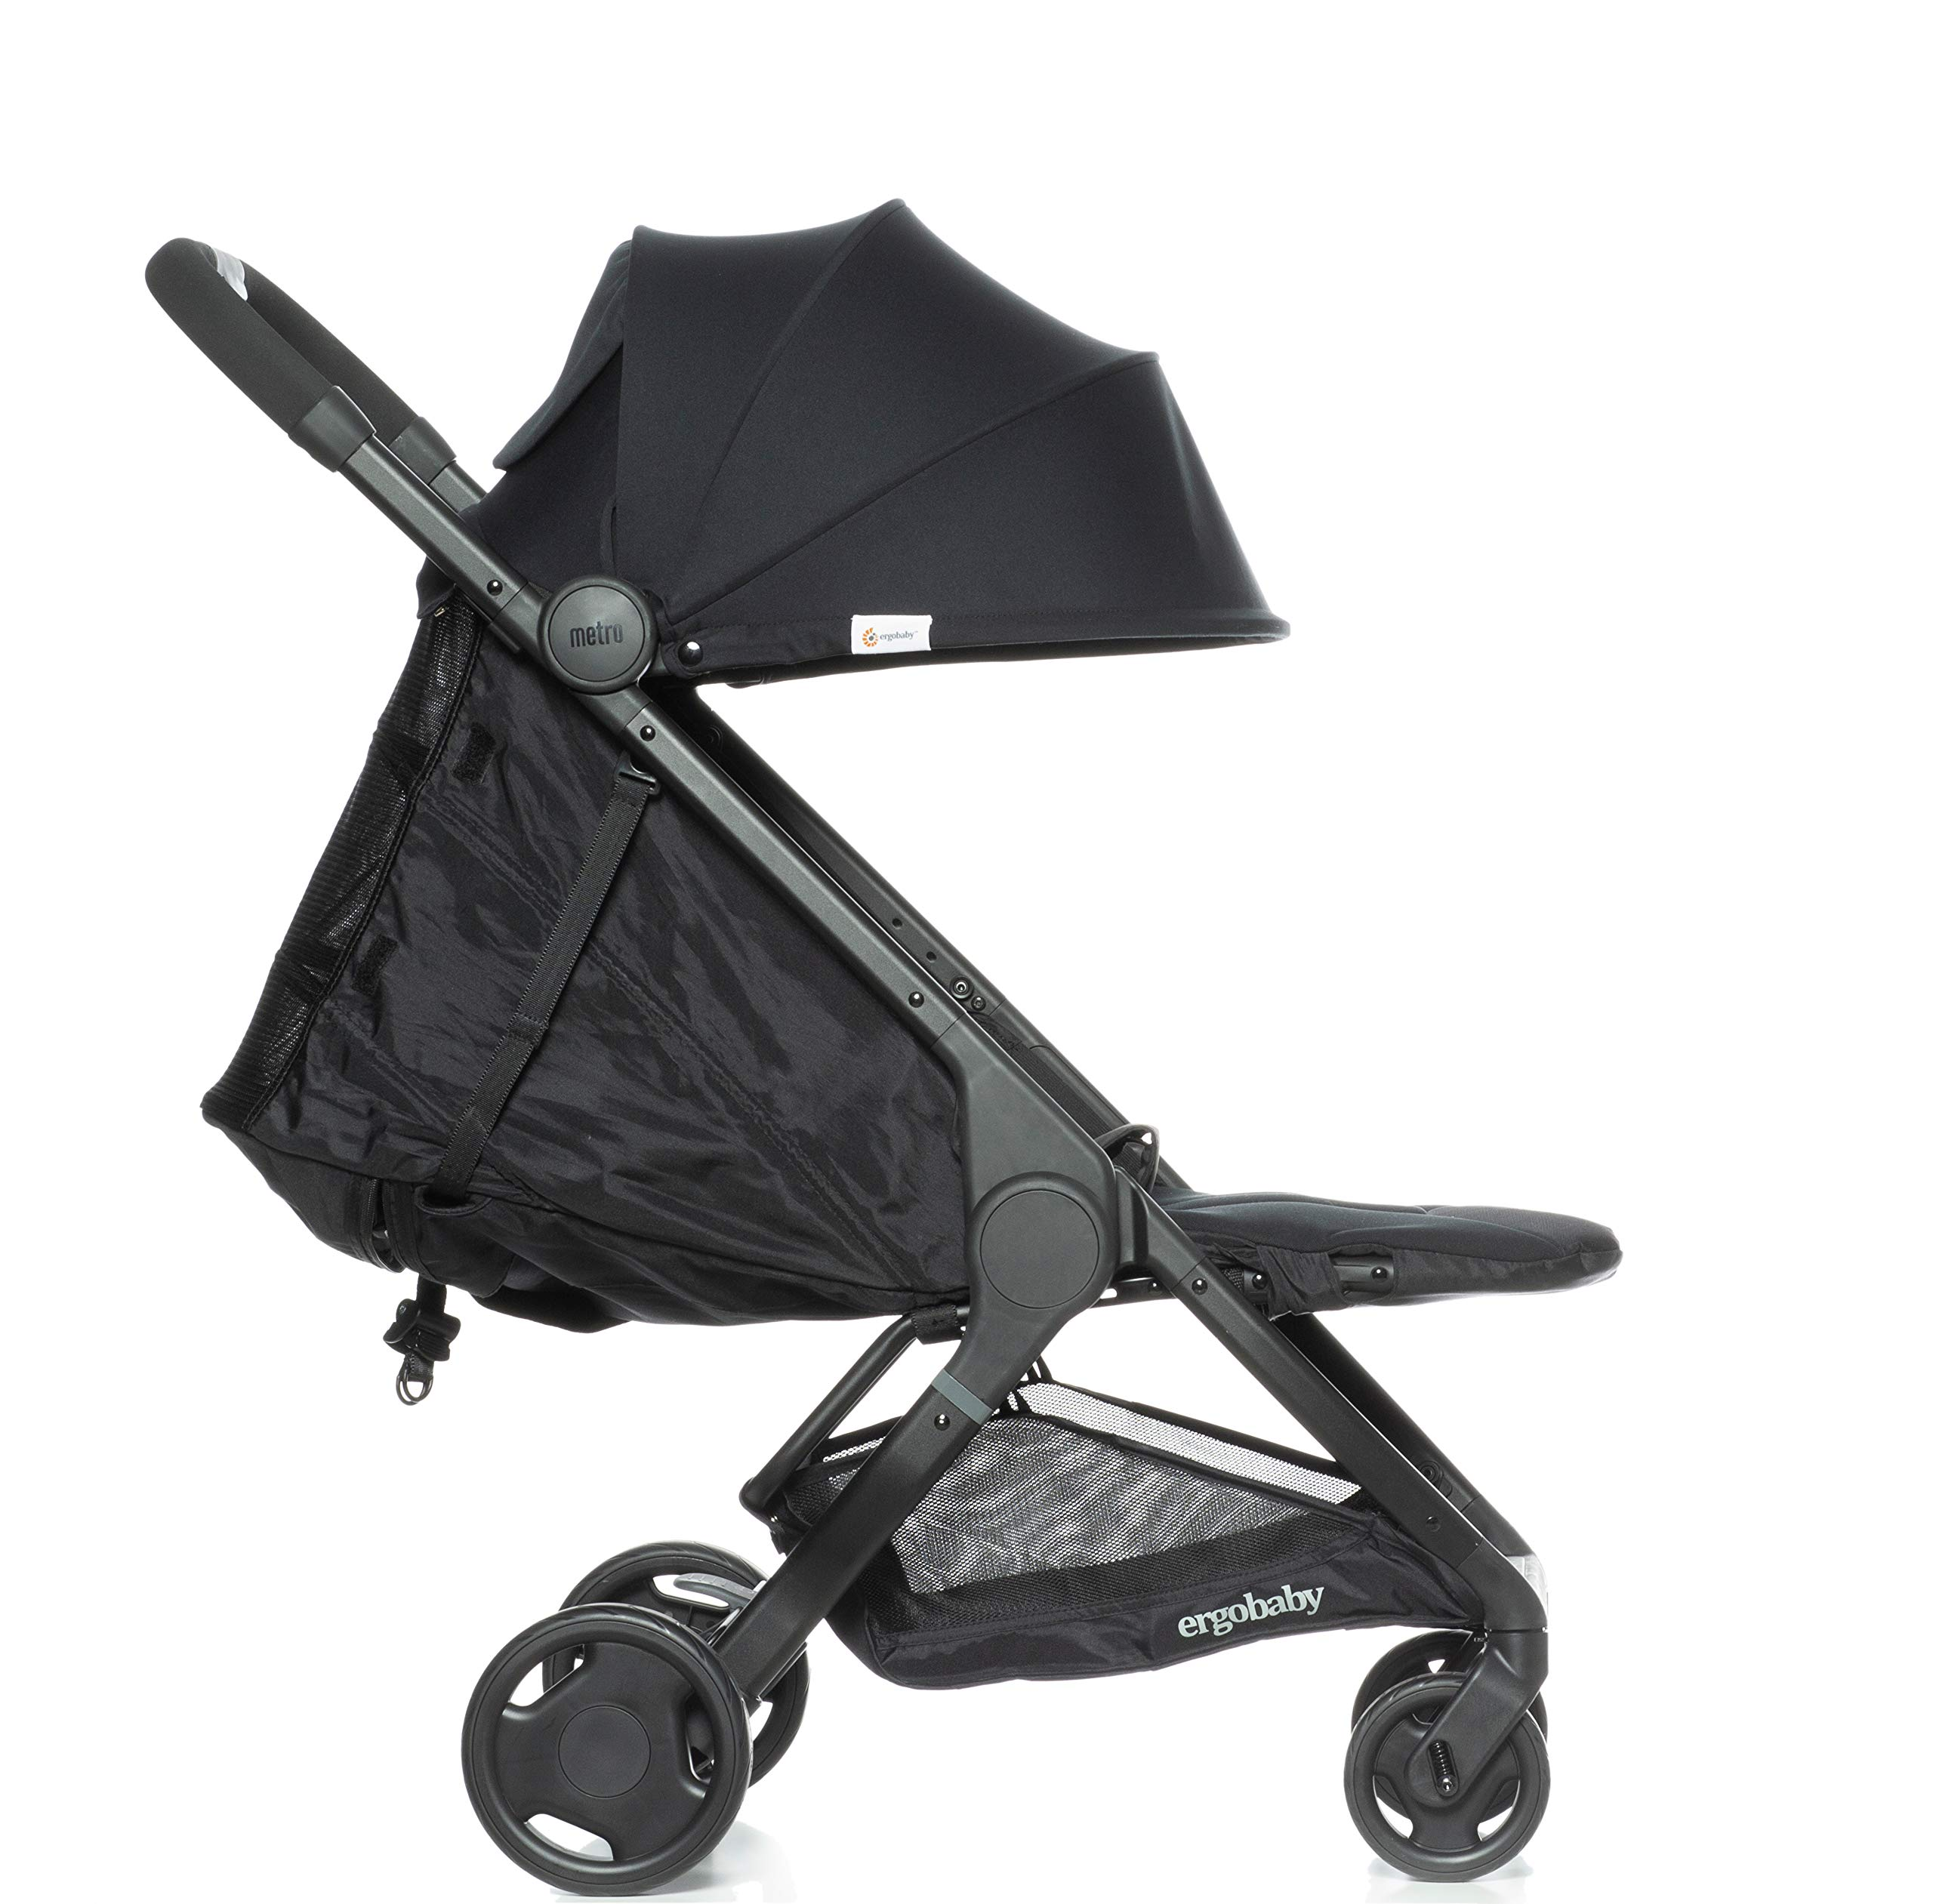 ErgobabyMetro Lightweight Buggy Stroller Pushchair with Sun-Shade Canopy One Hand Foldable, 6Months to 18kg Toddler (Black) Ergobaby A stroller that knows no limits. The ErgobabyMetro Strollers are ultra compact and fits effortlessly into small car boots and most aeroplane luggage compartments. An ideal baby and infant travel system. Baby comfort without compromise - soft, comfortable Stroller packed with plush, cushy padding that supports baby's head, back, bottom and legs . Advanced multi-zone support, and an adjustable footrest give your baby a comfortable seat. The gentle suspension and the shock absorbing PU tyres effortlessly tackle challenges such as kerbs, cobblestones and paving stones. Padded handle and strap. Storage tray for bags and shopping. 9